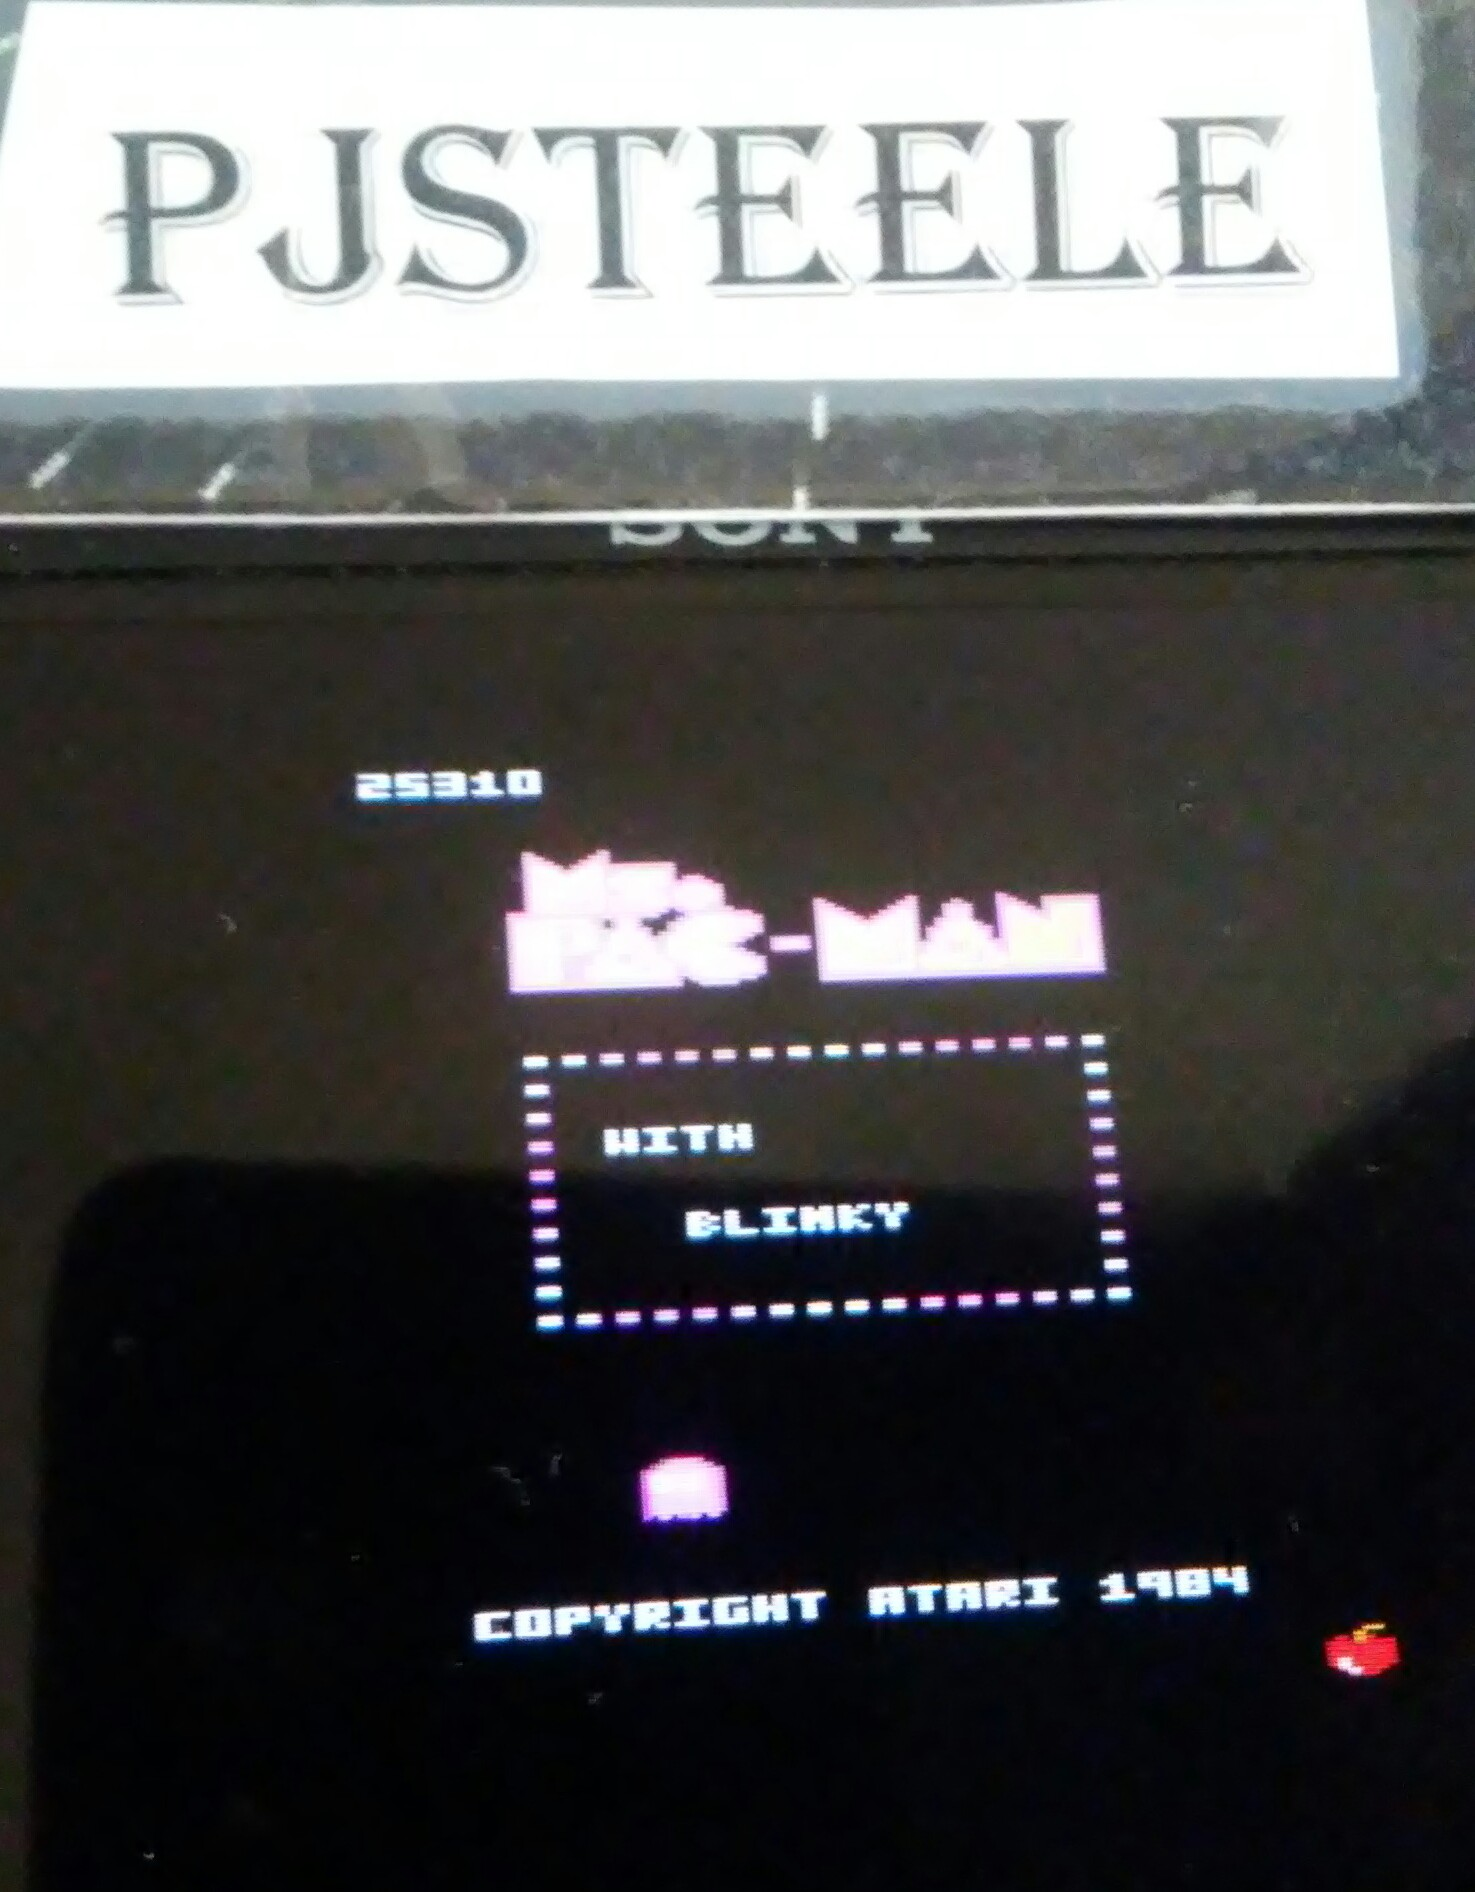 Pjsteele: Ms. Pac-Man: Apple Start (Atari 7800 Emulated) 25,310 points on 2018-06-21 18:18:53